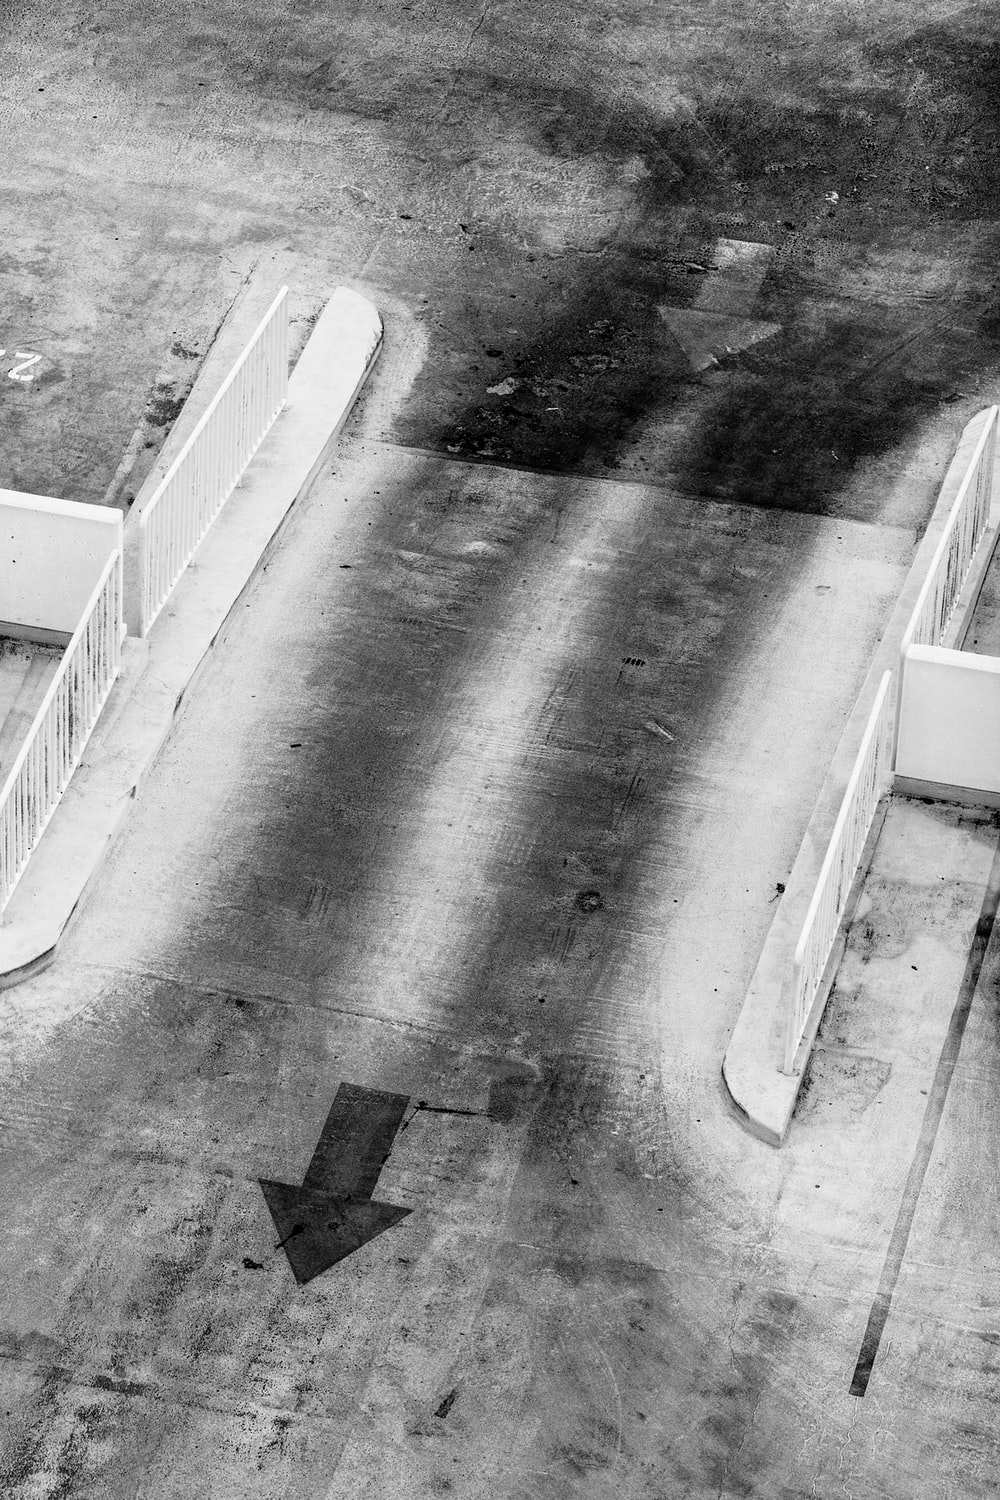 grayscale photography of concrete rod with arrows